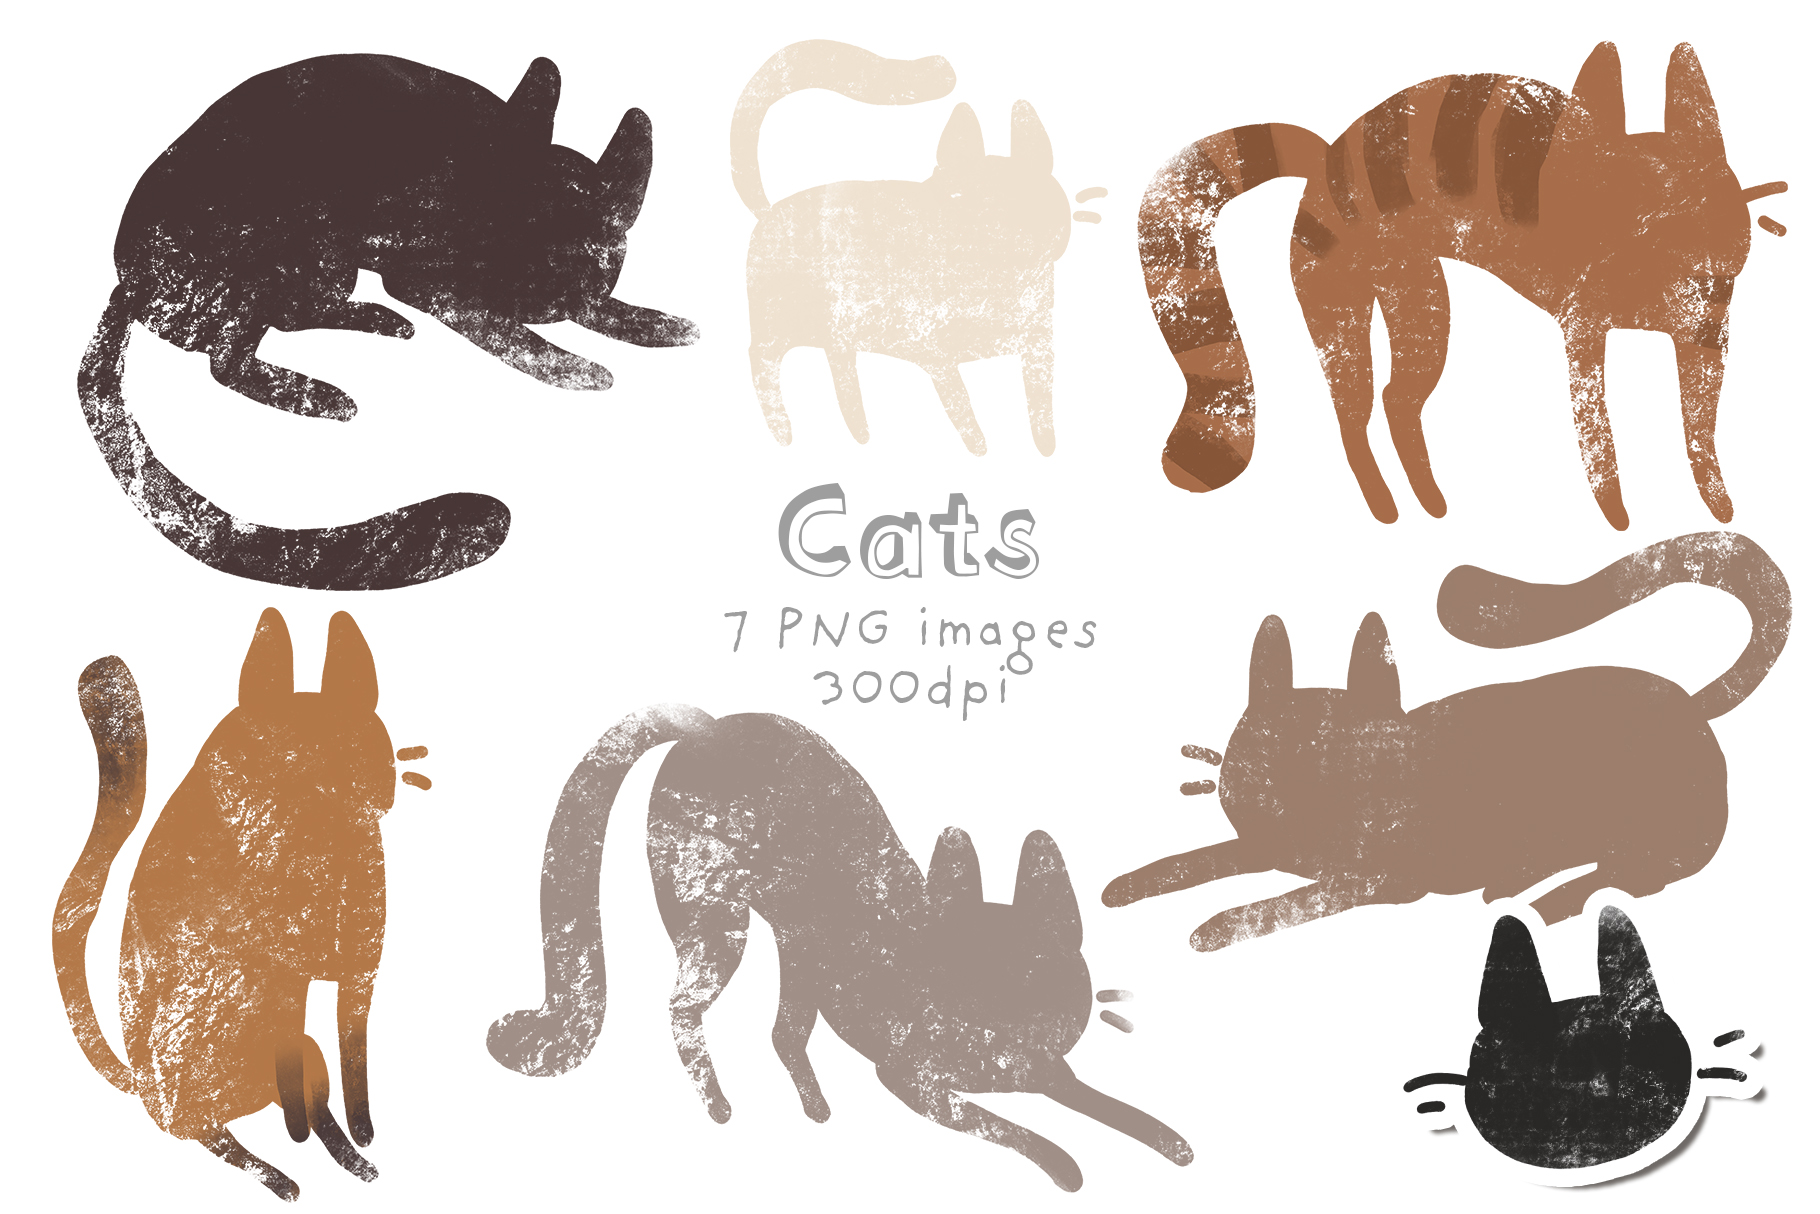 Cats clipart example image 1